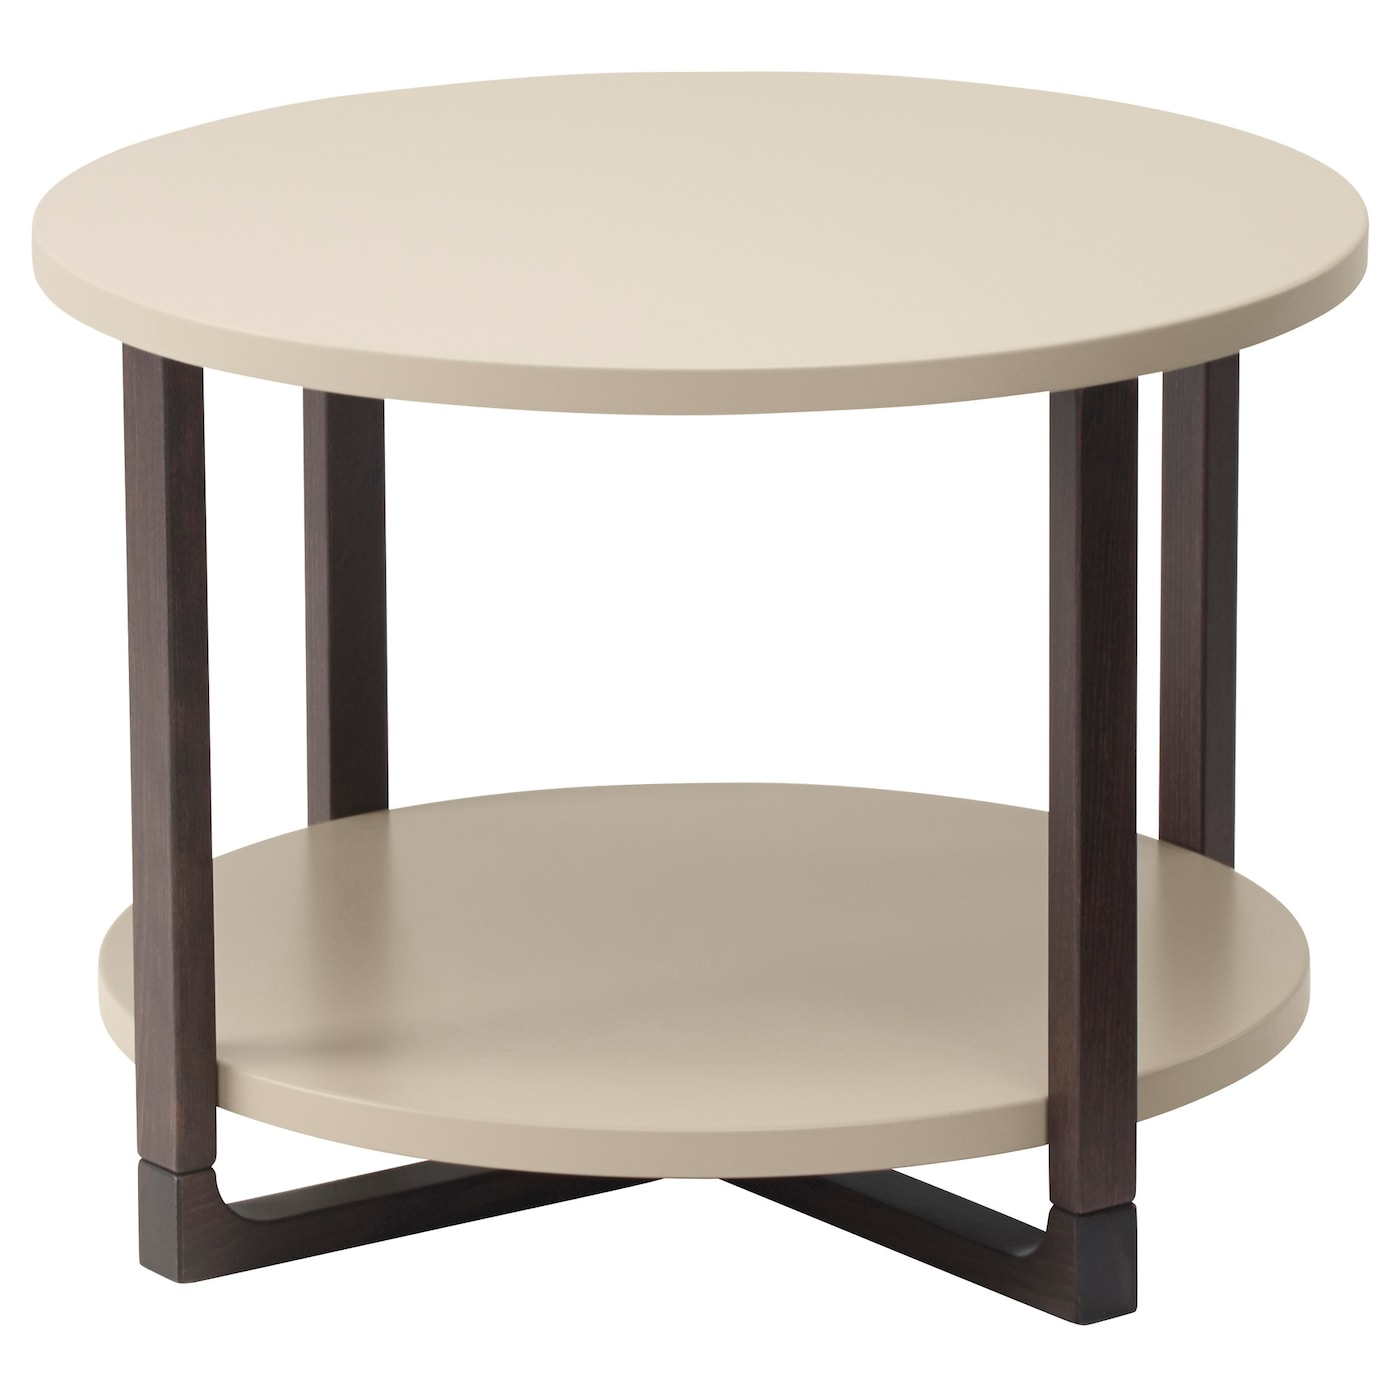 IKEA RISSNA side table The table legs are made of solid wood, a hardwearing  natural